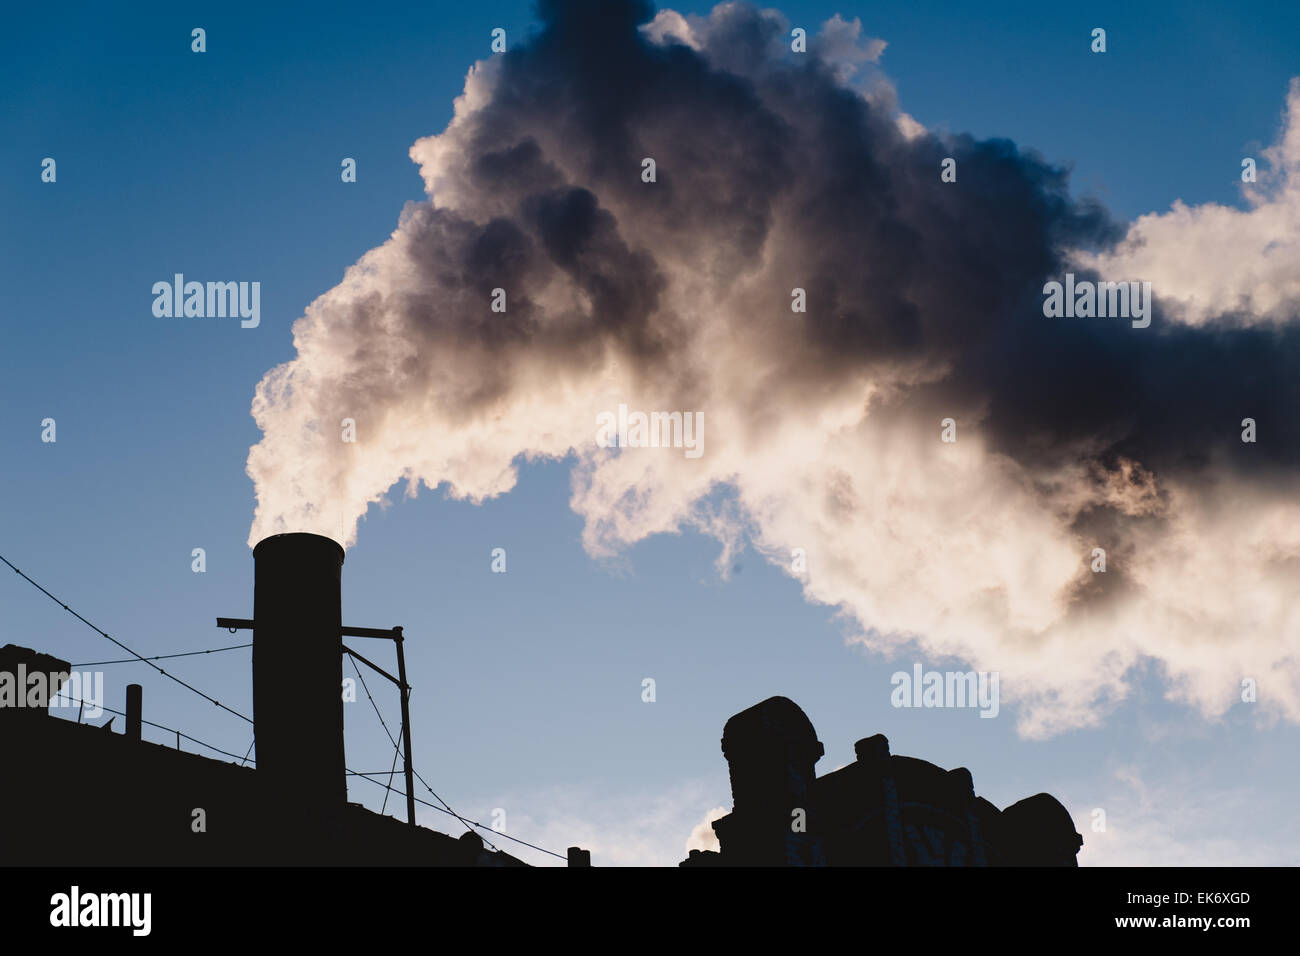 Electrical power industrial smoking chimney, steam against clear sky Stock Photo